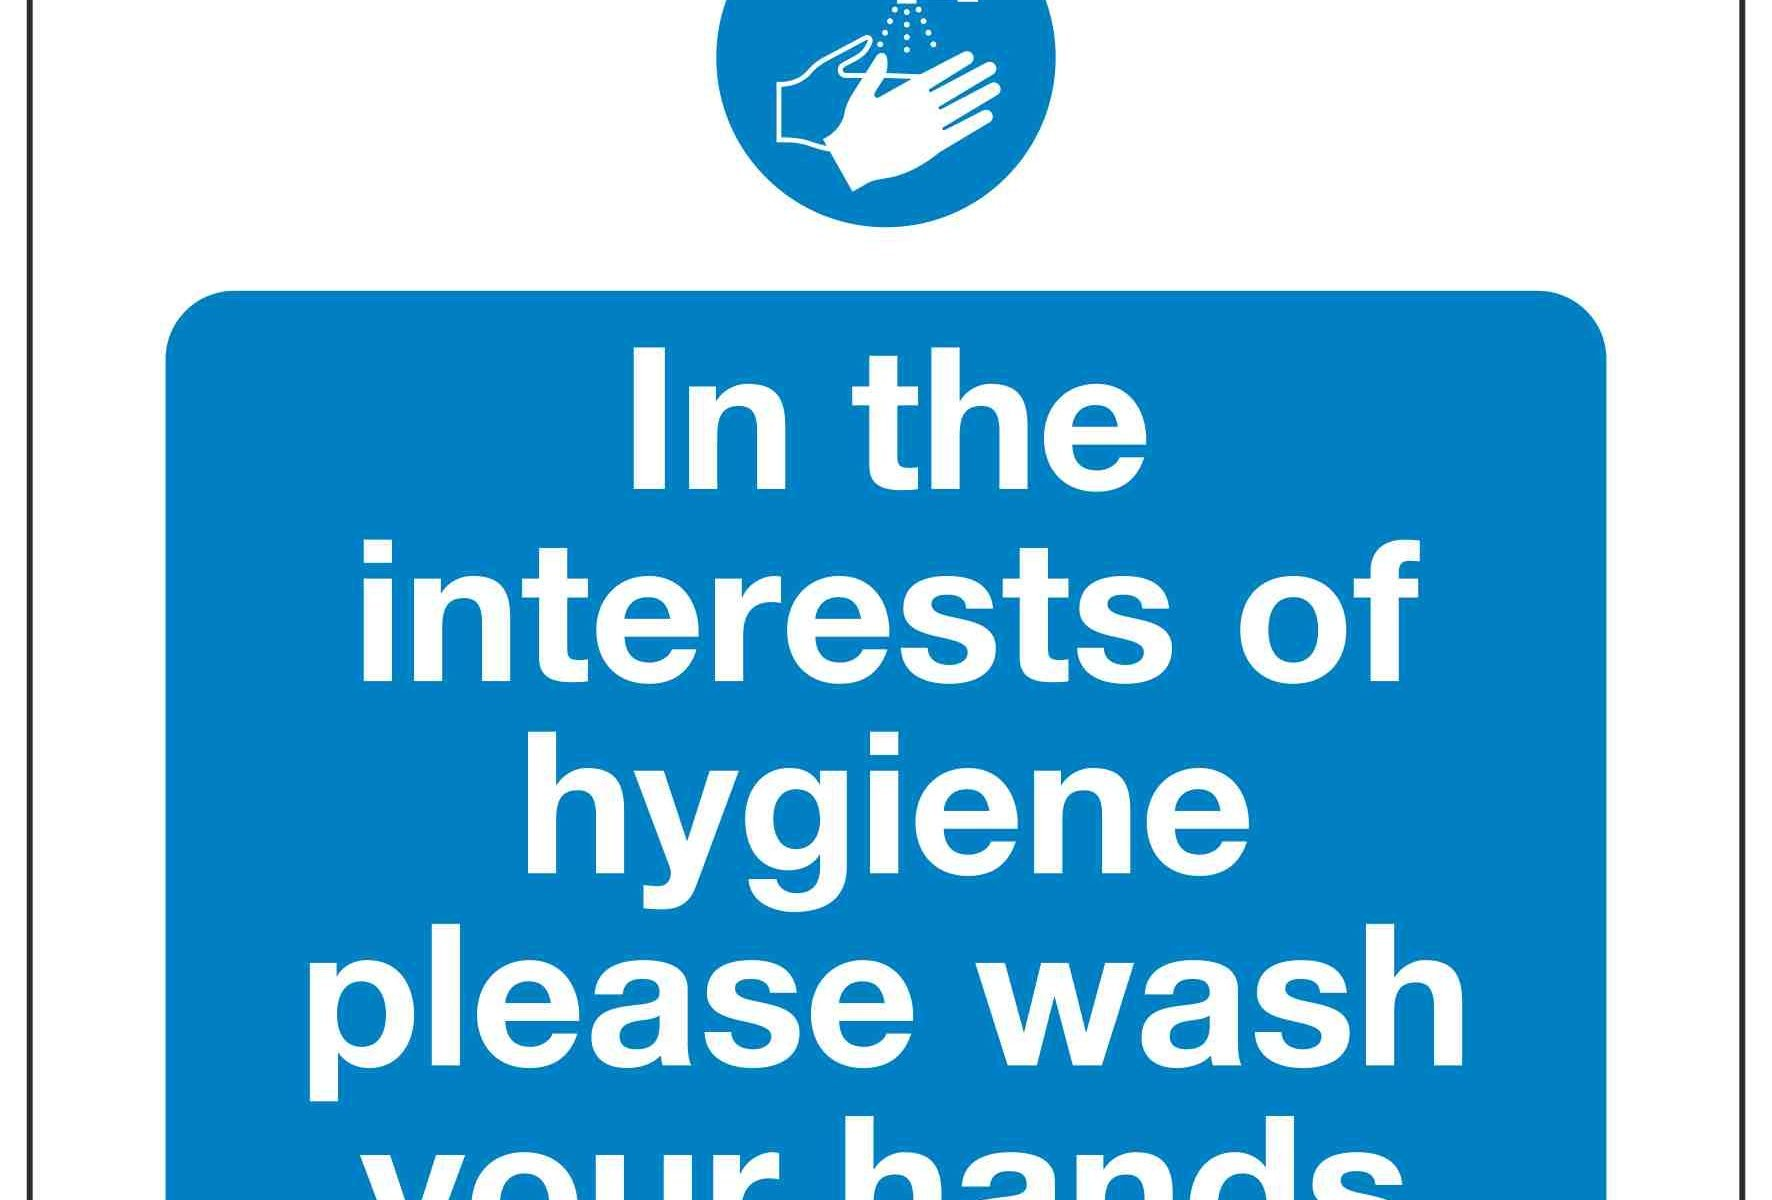 In the interests of hygiene please wash your hands